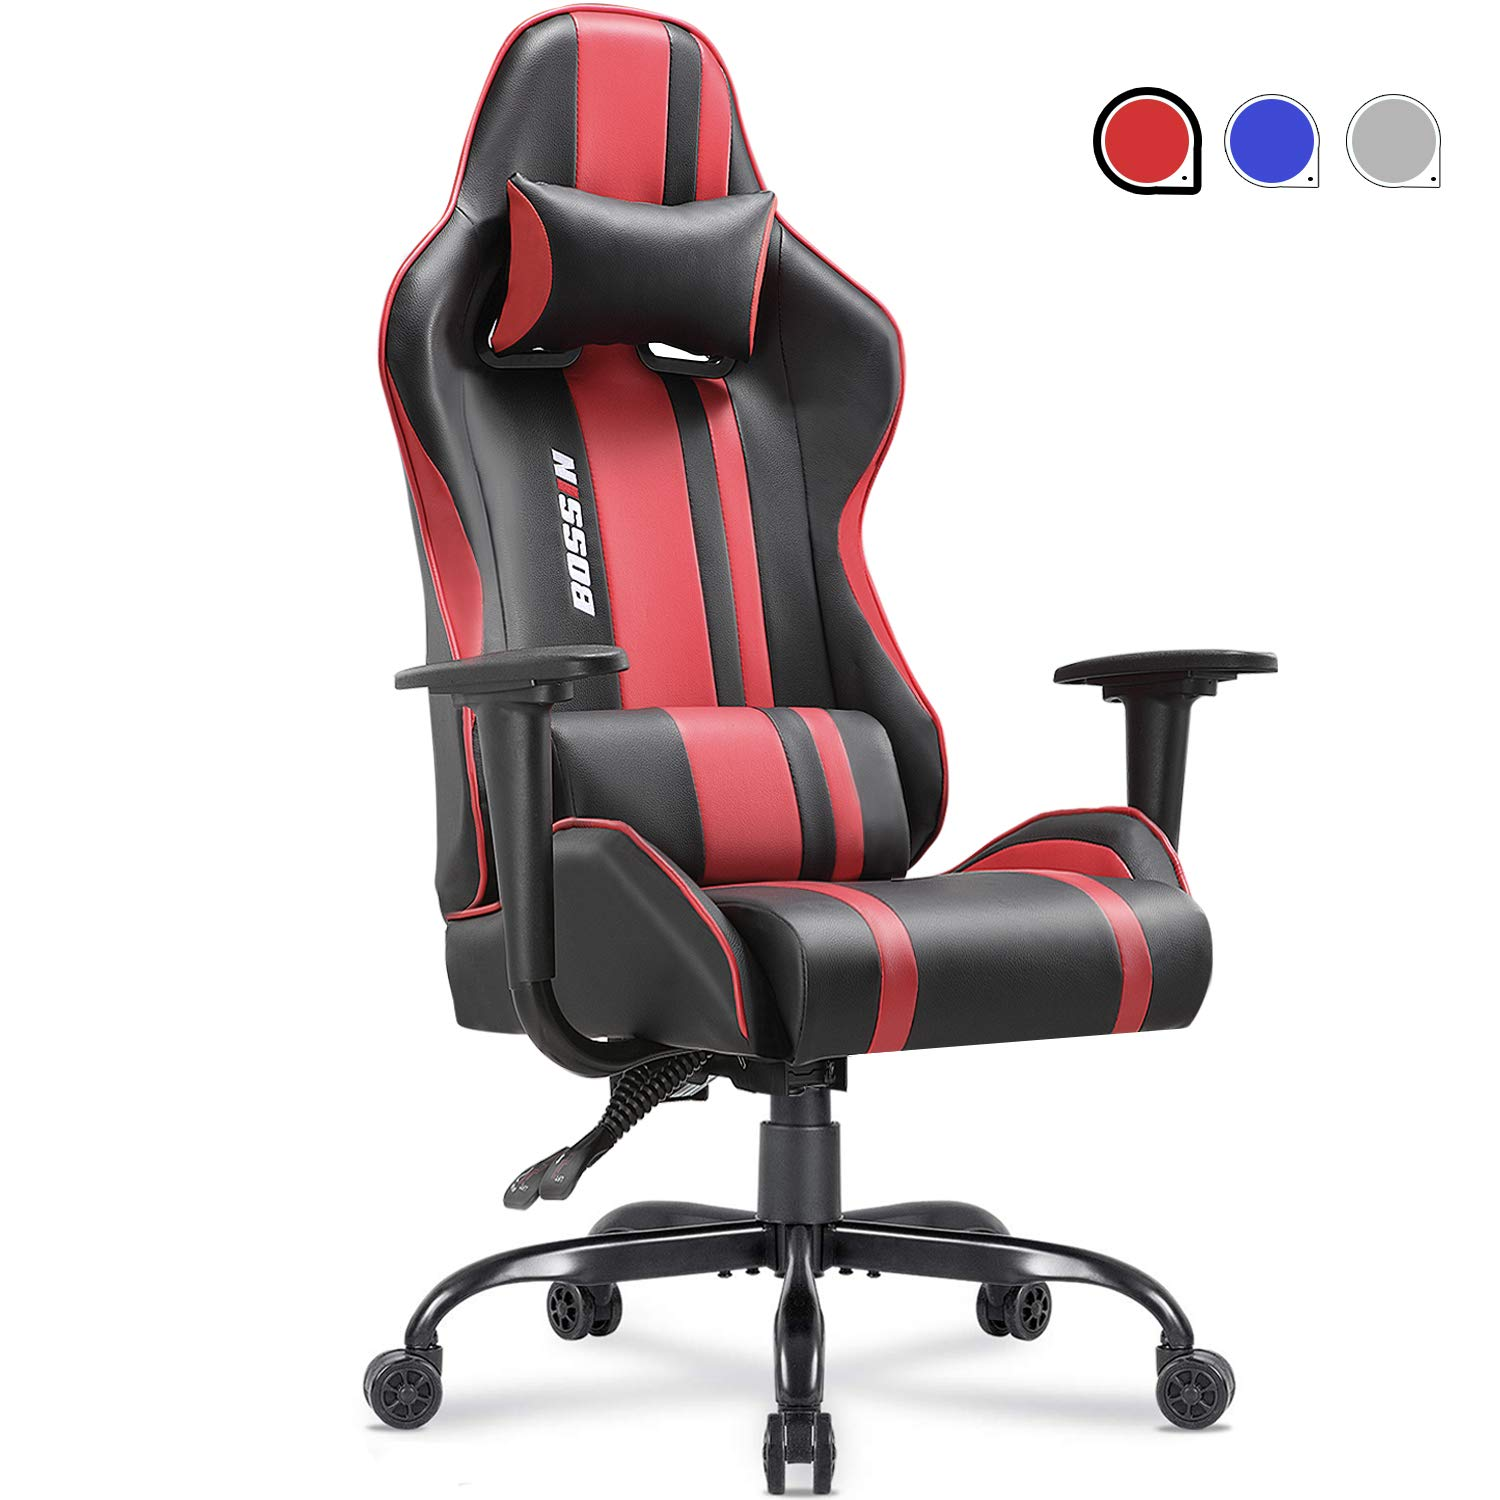 Gaming Chair Racing Style Office Chair Adjustable Height Chair Ergonomics High-Back Chair PU Leather Gaming Chair Swivel PC Computer Chair with Headrest and Lumbar Support(Red) by Lemberi